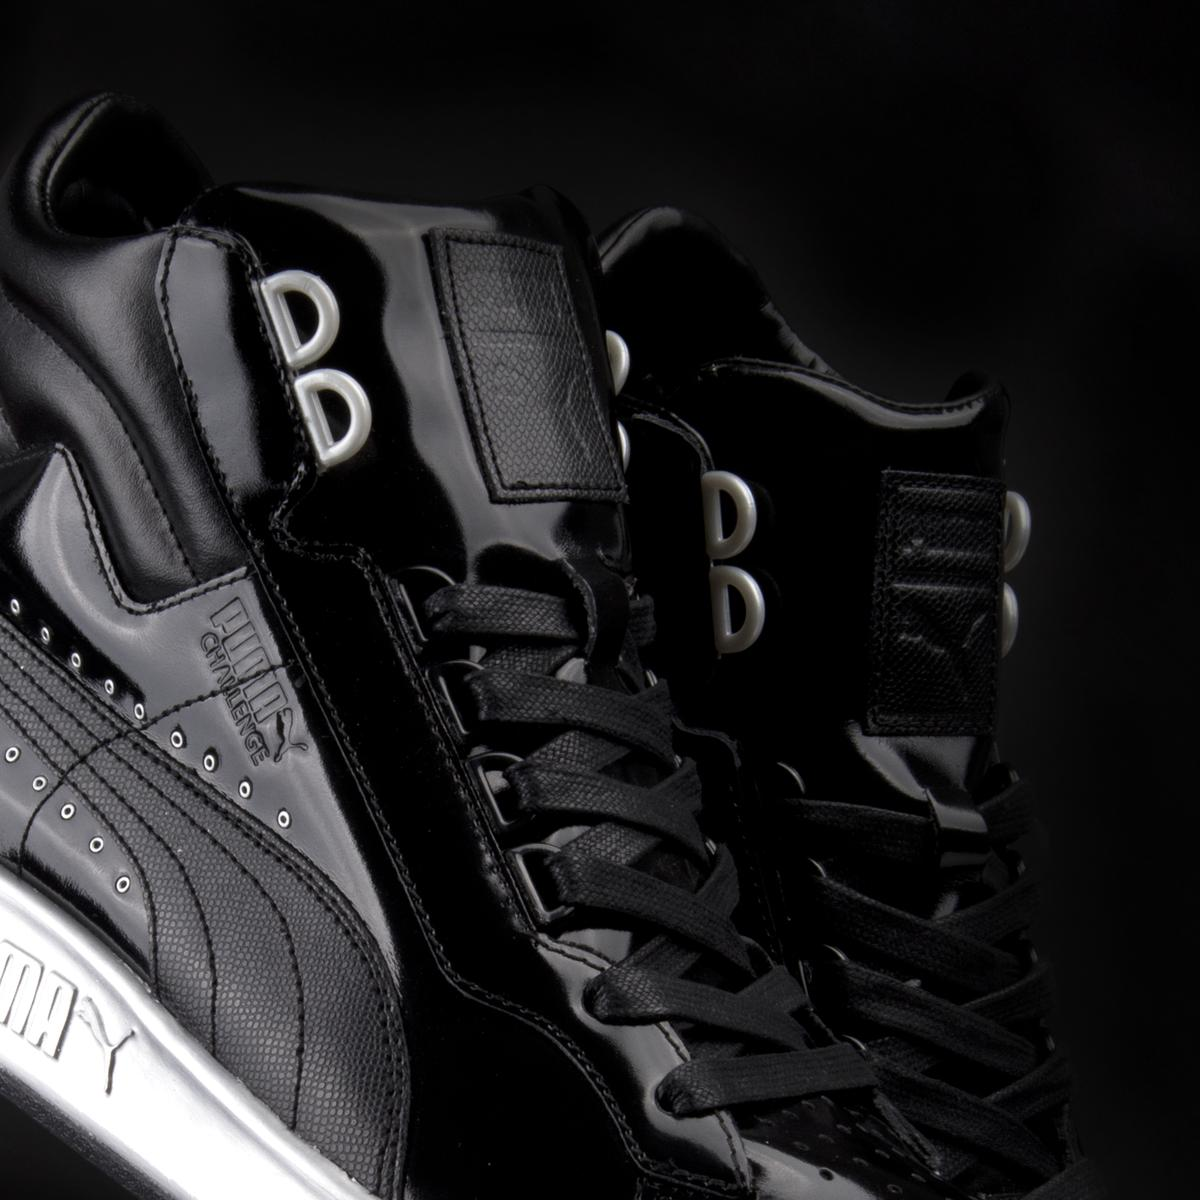 The PUMA x Meek Mill Patent Basket drops Saturday 3 21 and the Patent  Challenge drops in April. Both will be available at The PUMA Lab Powered by  Foot ... 0757d97ba